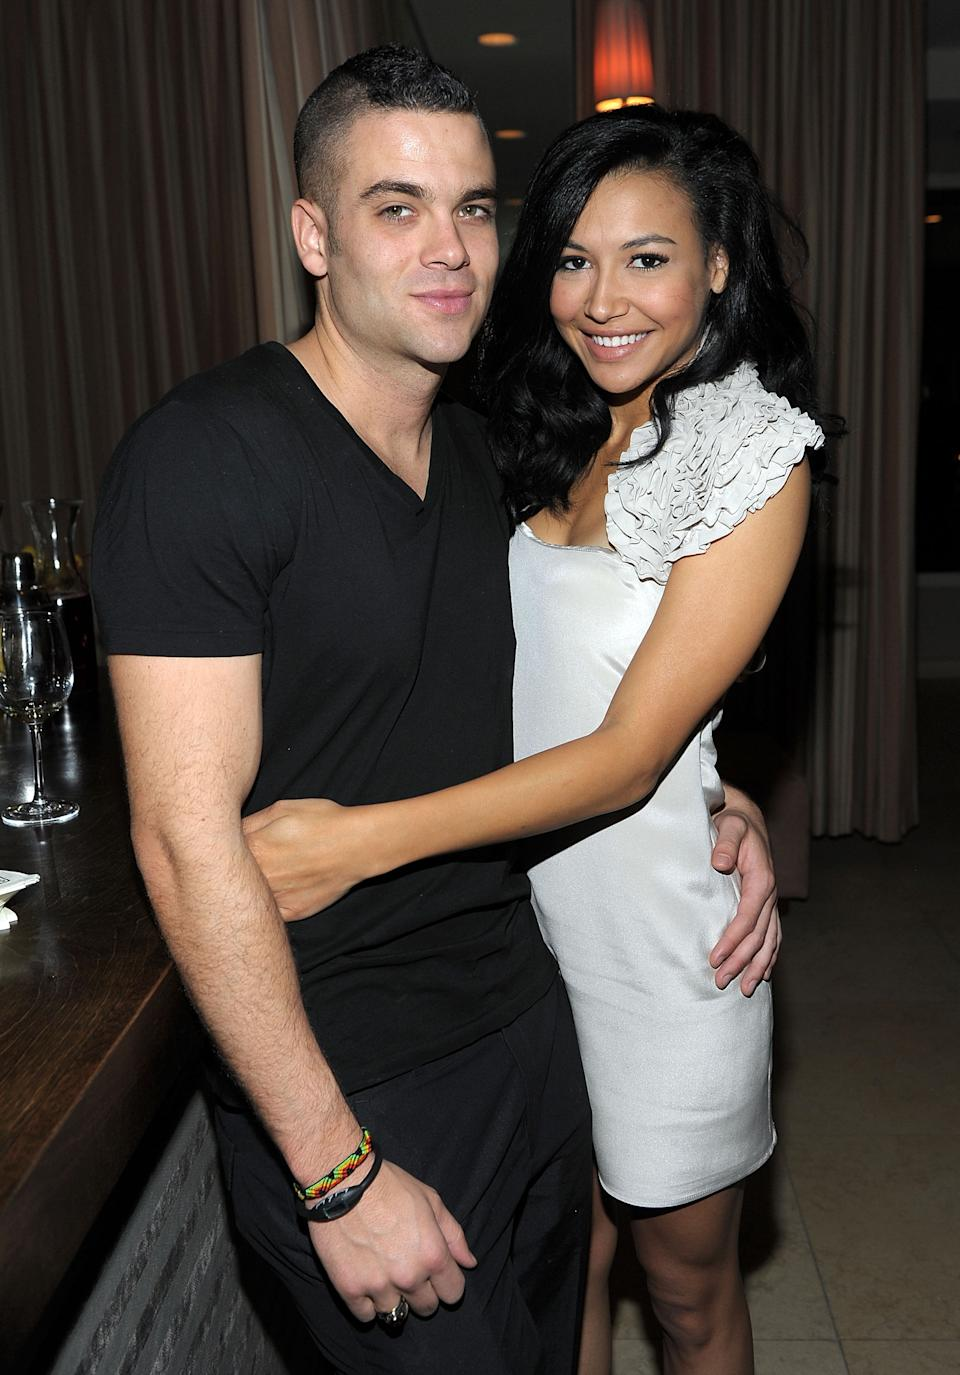 Mark Salling and Naya Rivera attend the celebration of Glee's Golden Globe nominations with InStyle and 20th Century Fox held at Sunset Tower on January 9, 2010 in West Hollywood, California.